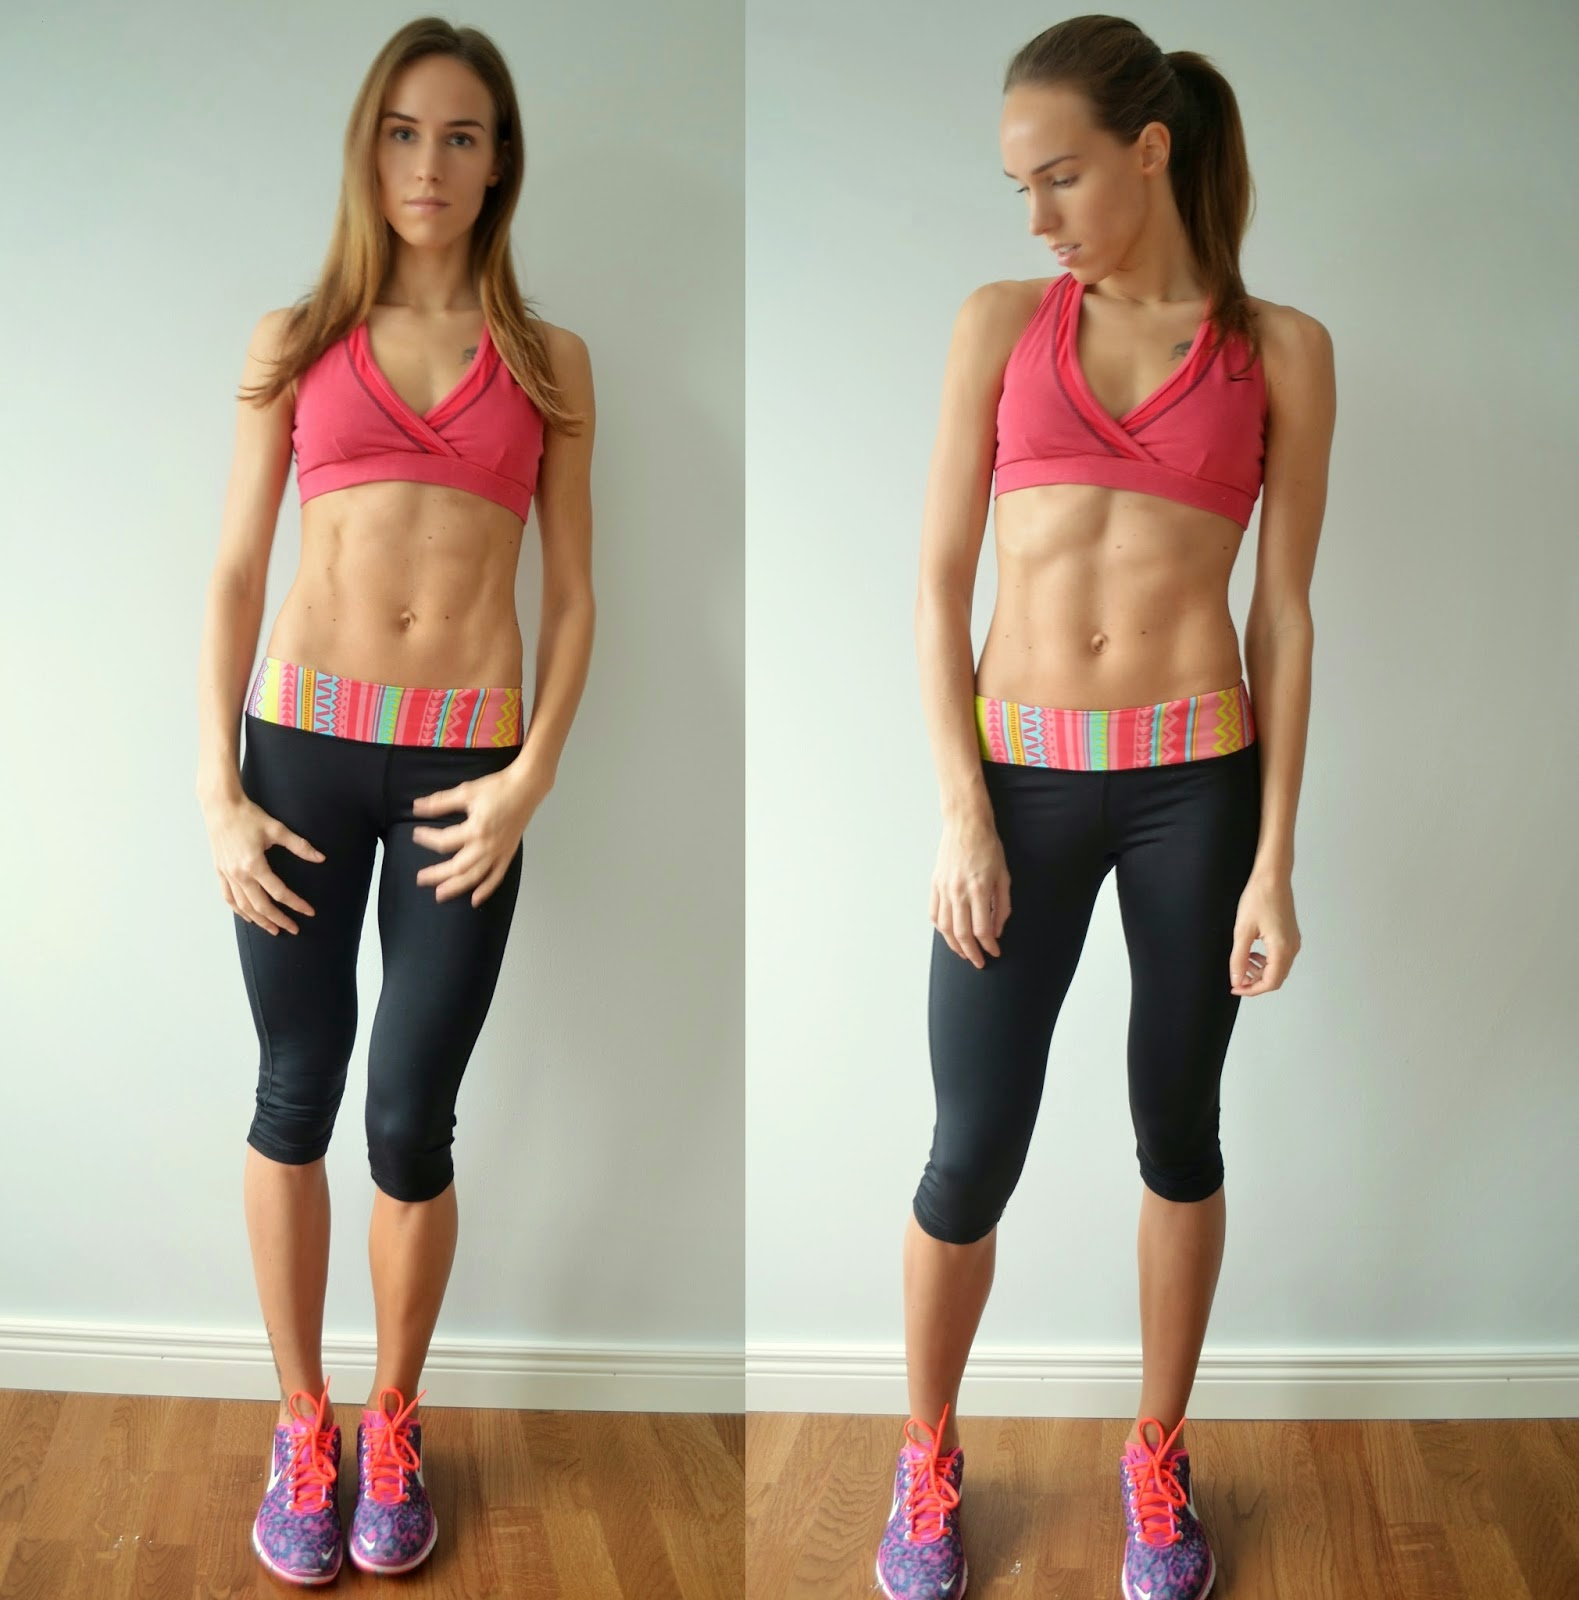 abs bikini body fitness model pink nike sports bra